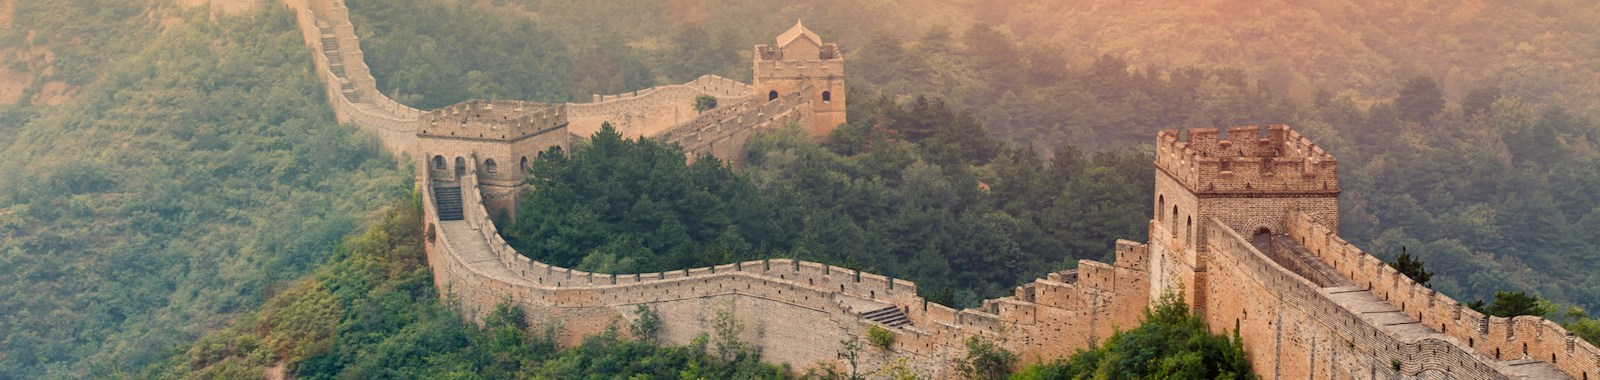 majestic spectacular Great Wall of China in the sunset